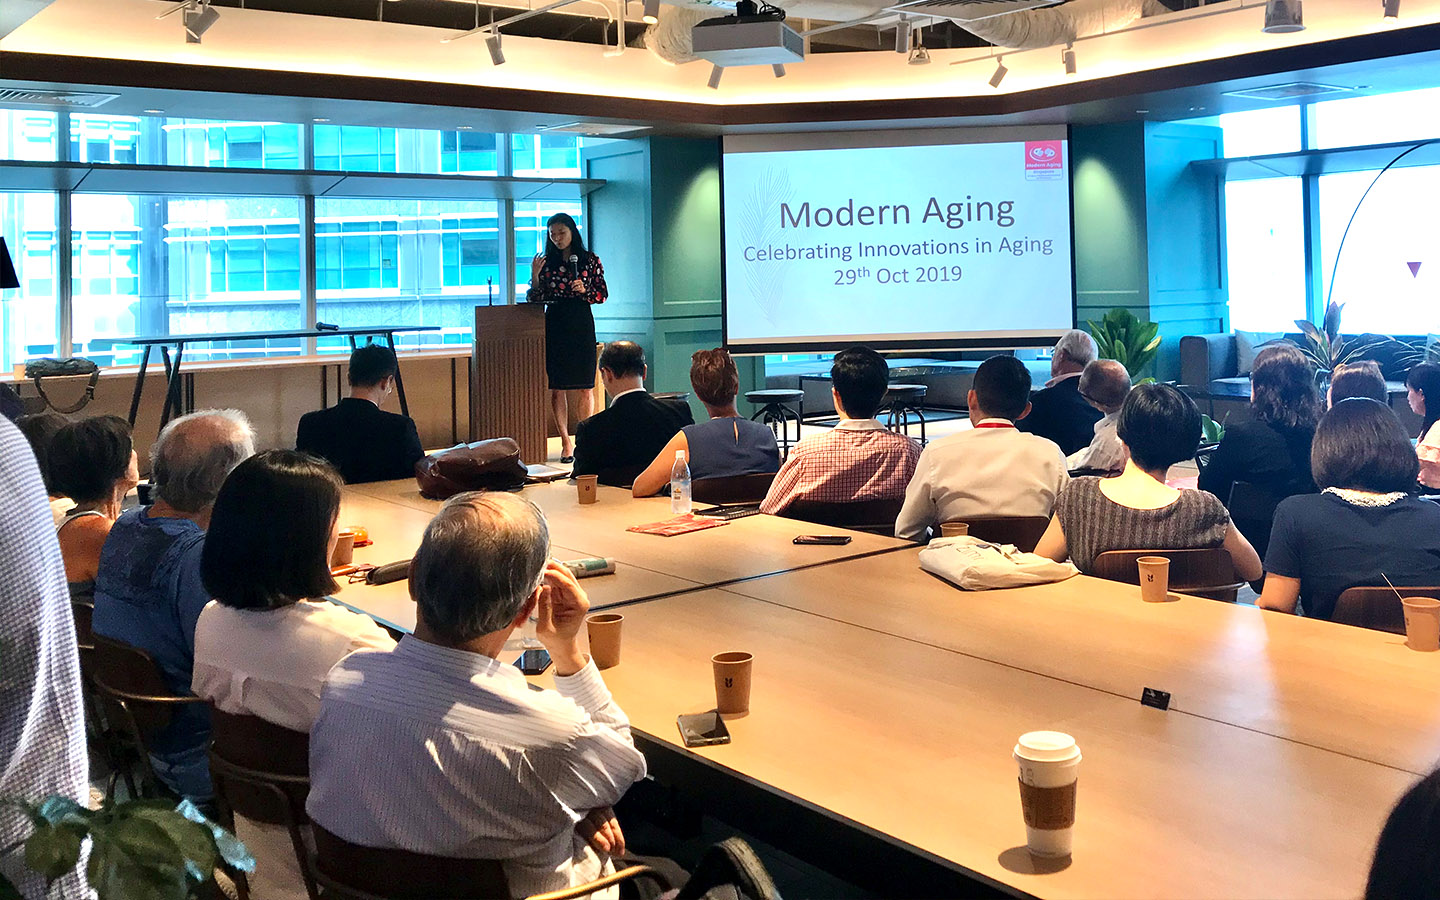 Modern Aging Networking Night: Celebrating Innovations in Aging